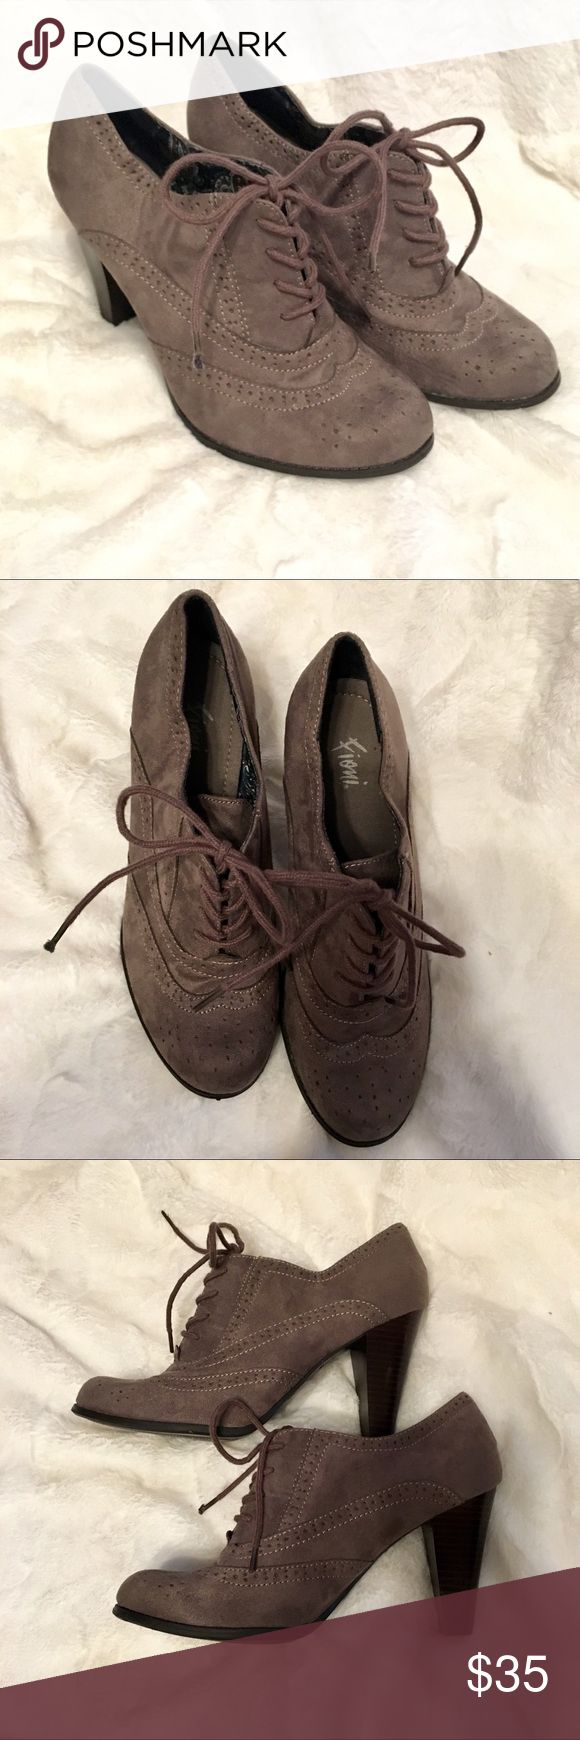 NWOT Gray Oxford Lace Up Booties Heels NWOT Super cute lace up pumps in the most adorable shade of gray. ❤️❤️❤️ Shoes Heeled Boots